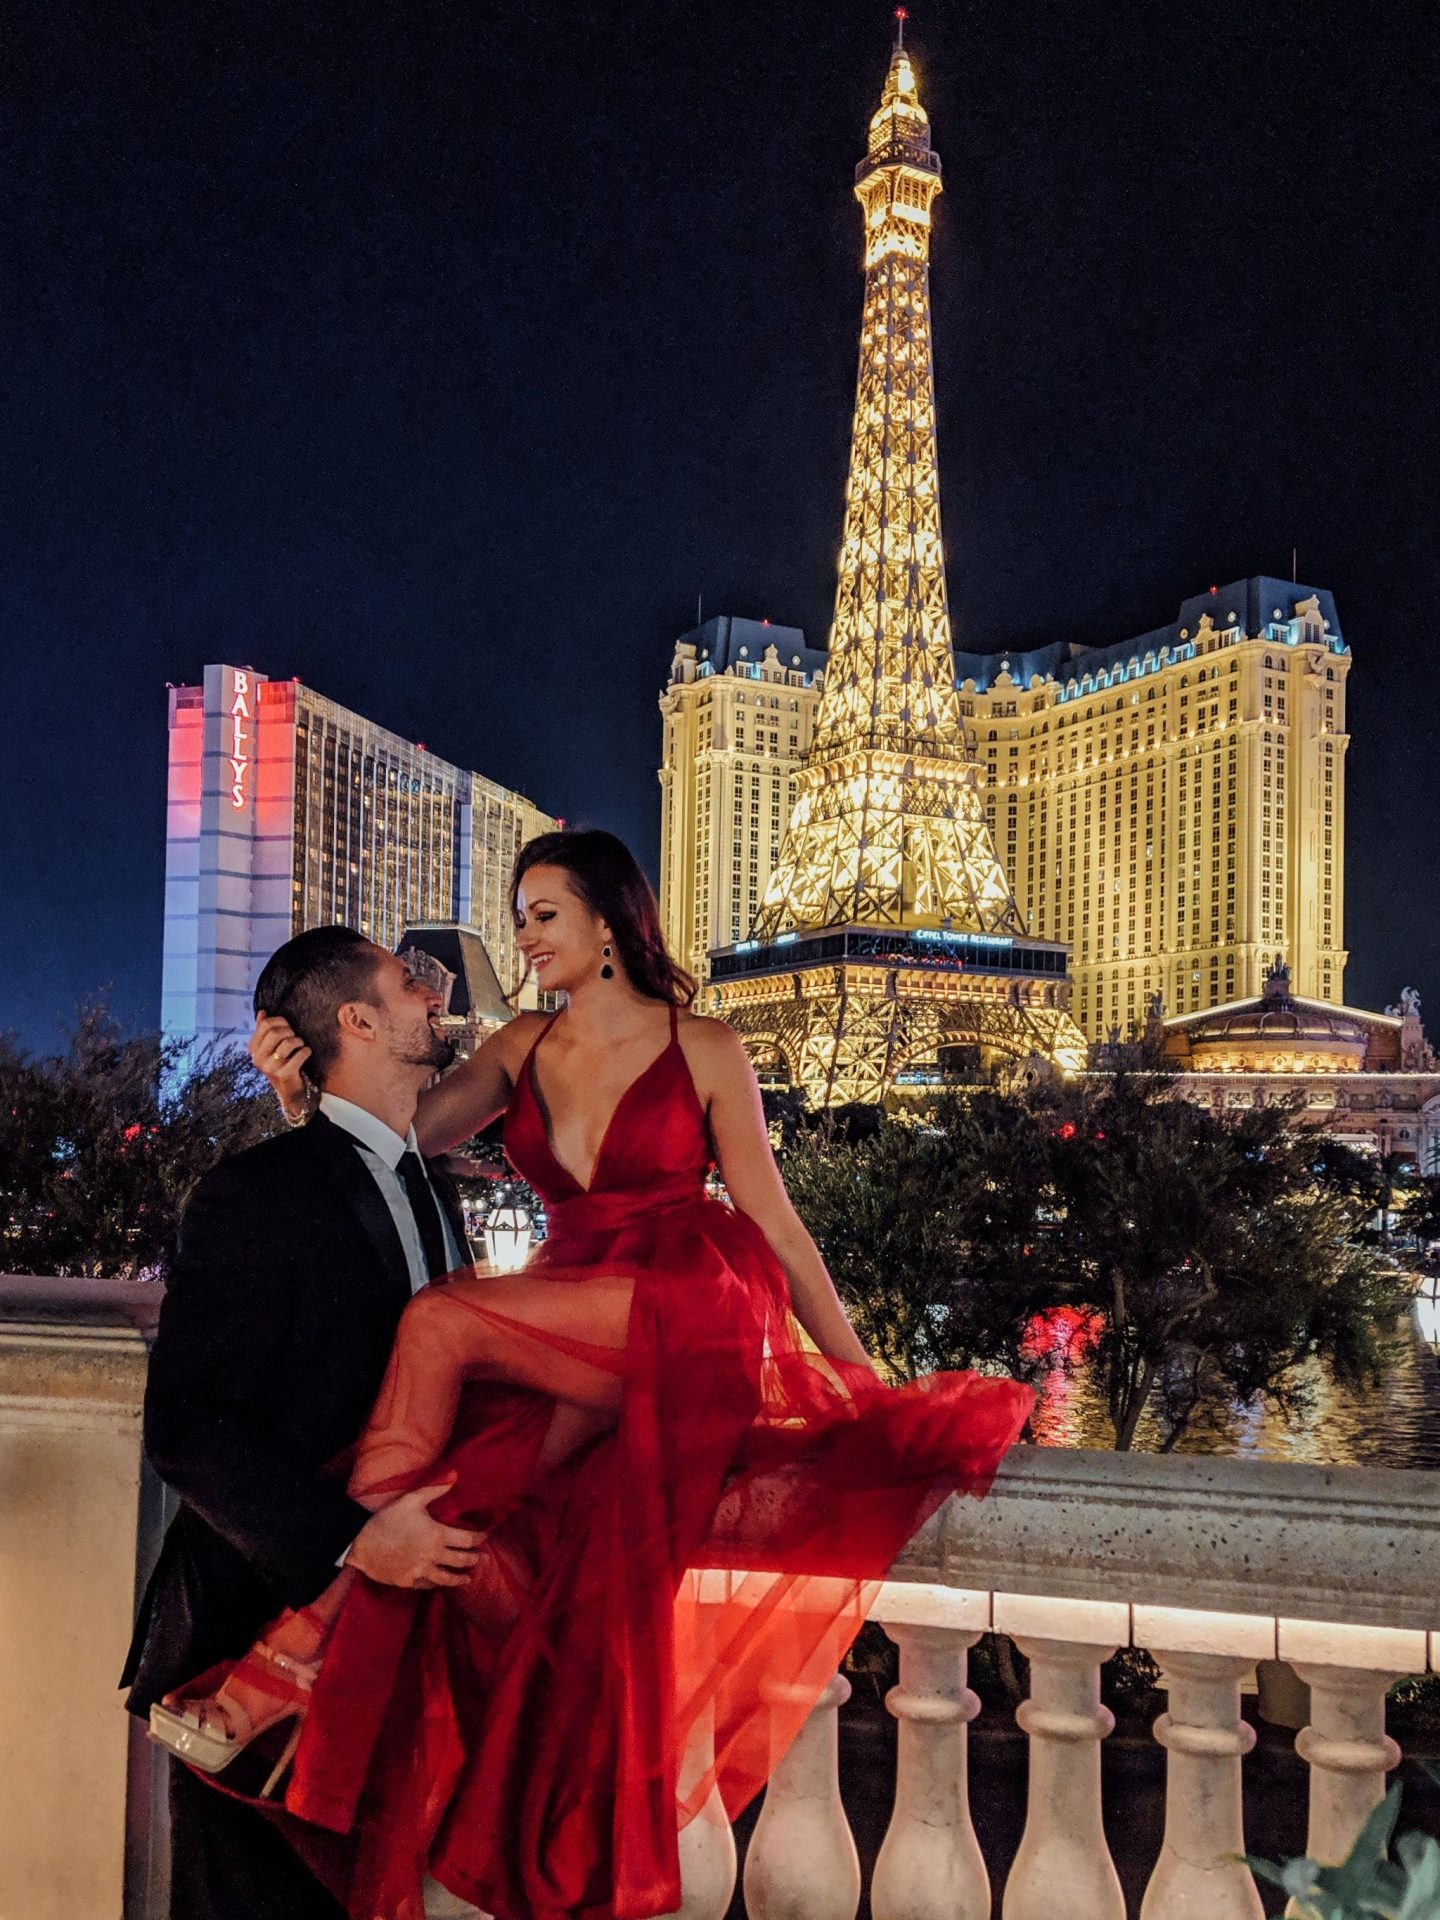 Las Vegas strip at night at the Bellagio fountain and Paris Hotel - by @danandnatty